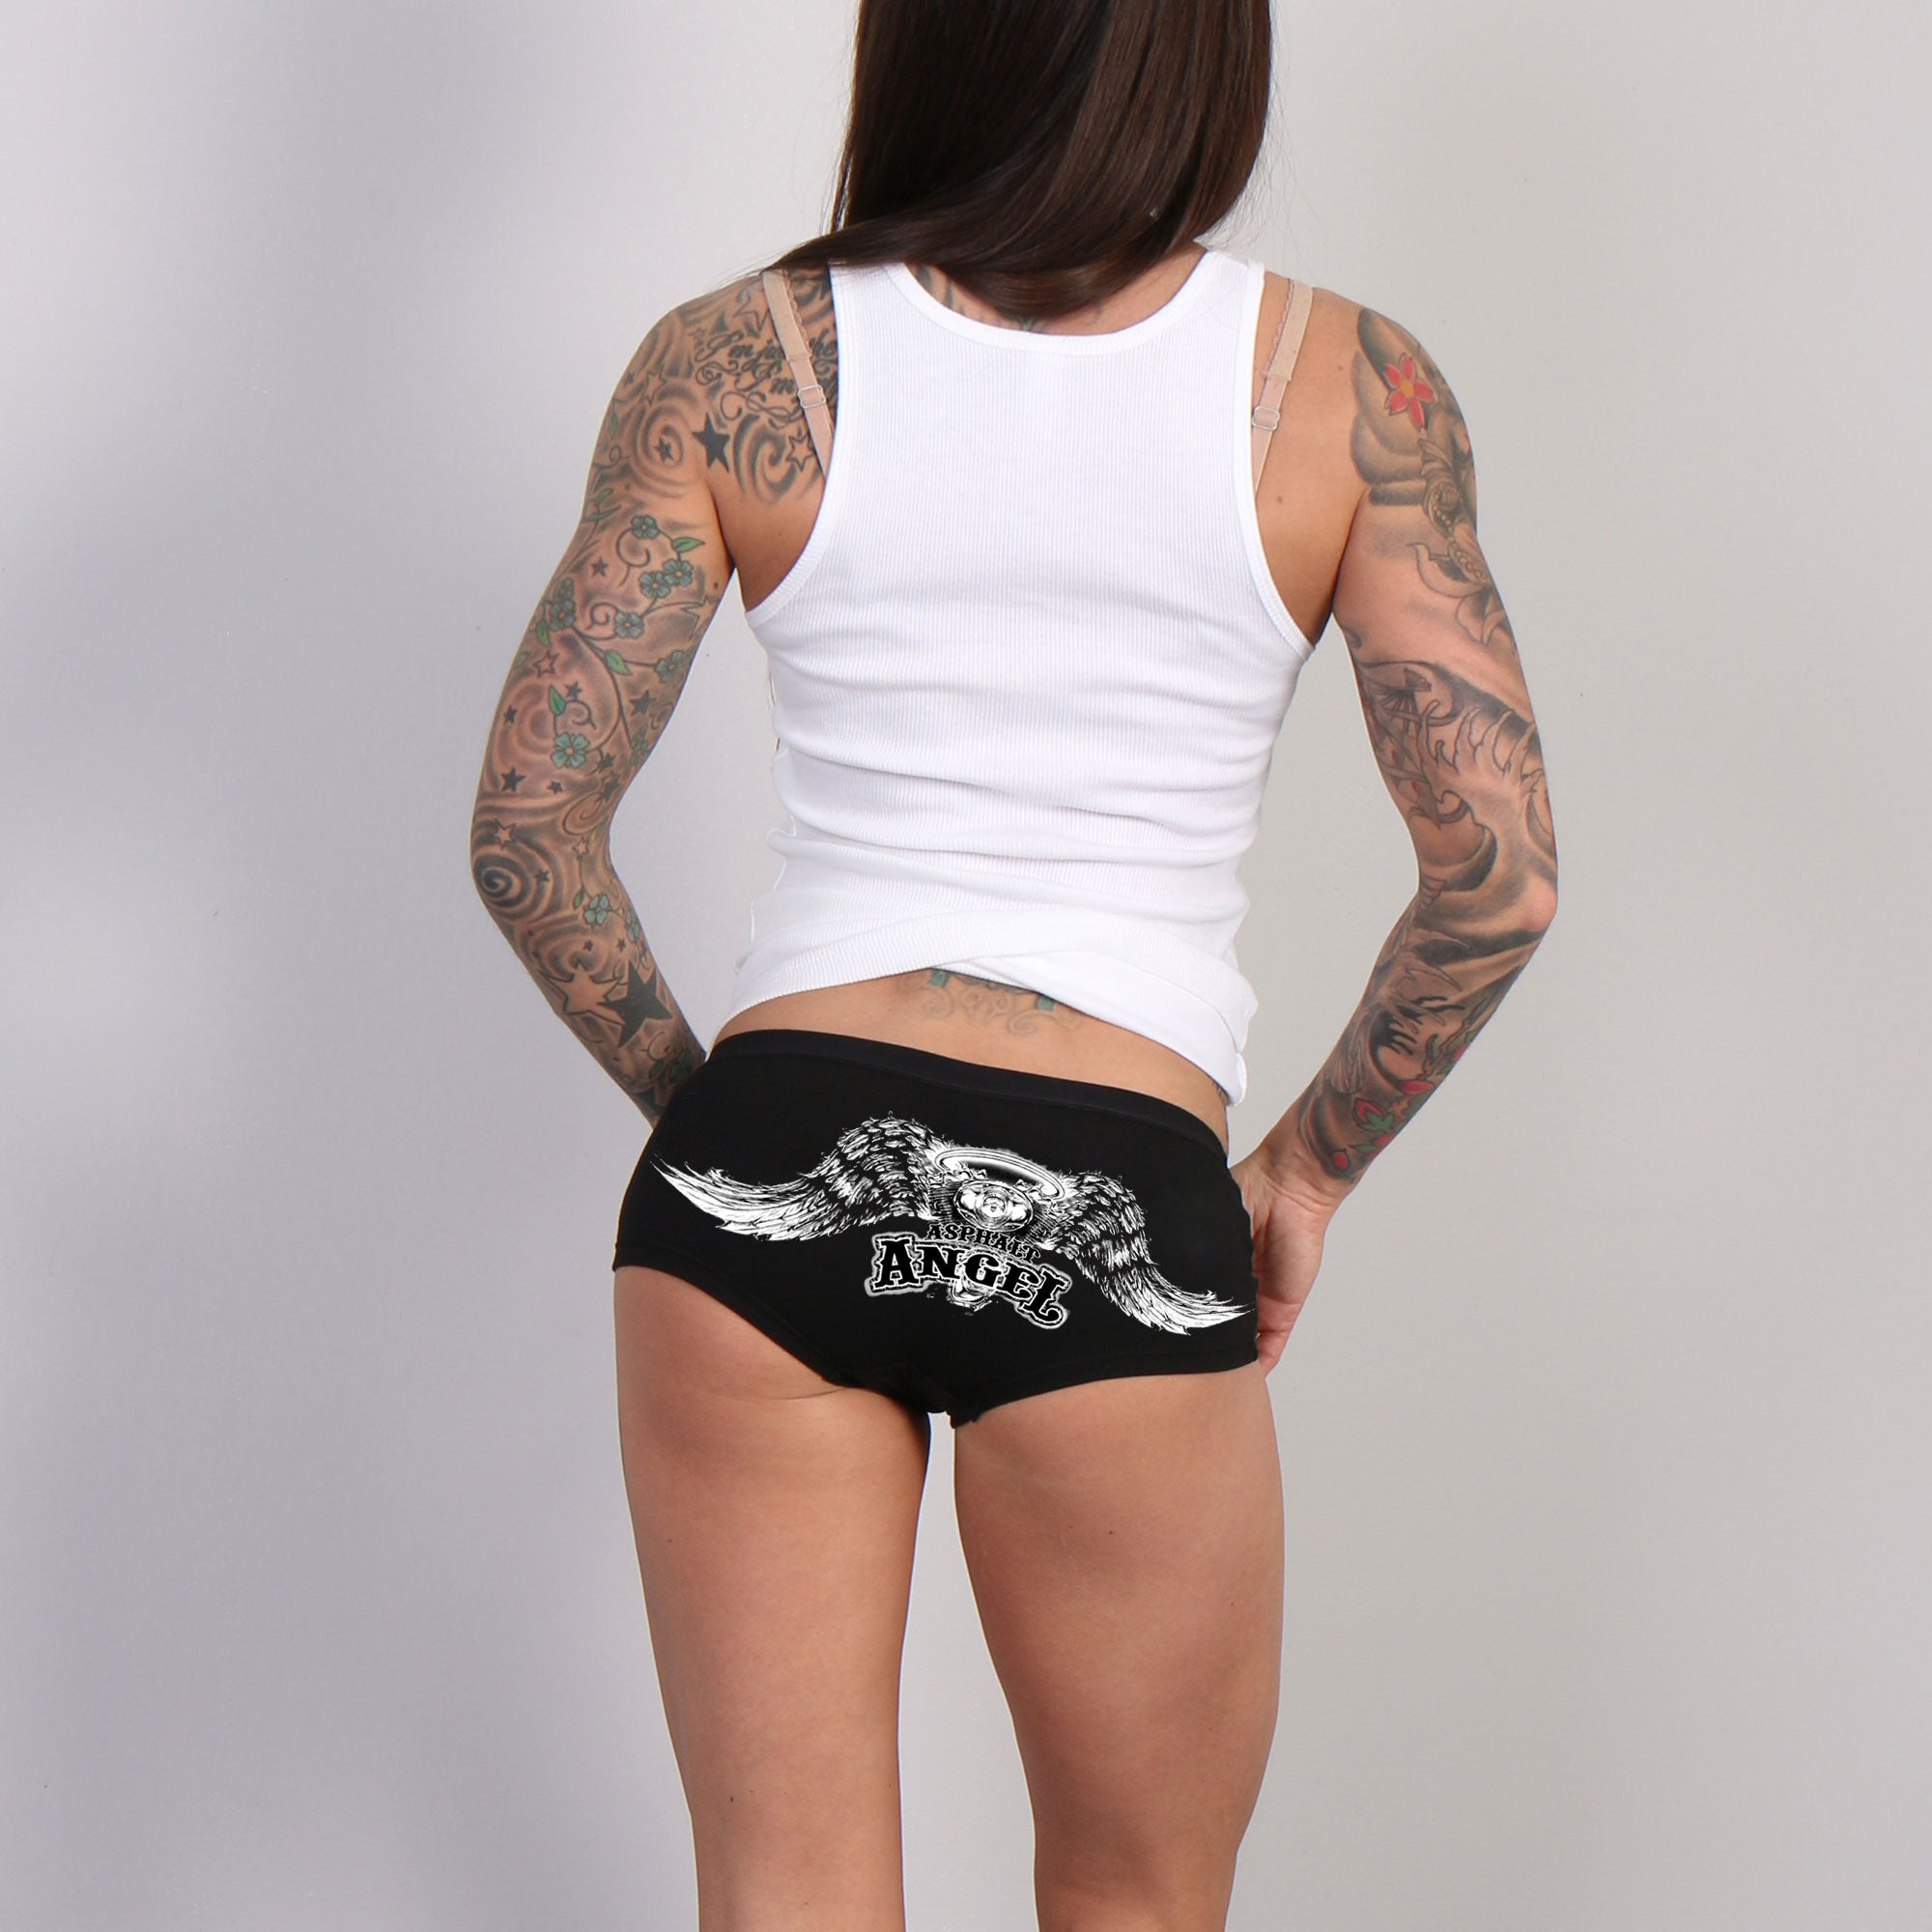 Hot Leathers Asphalt Angel Boy Shorts